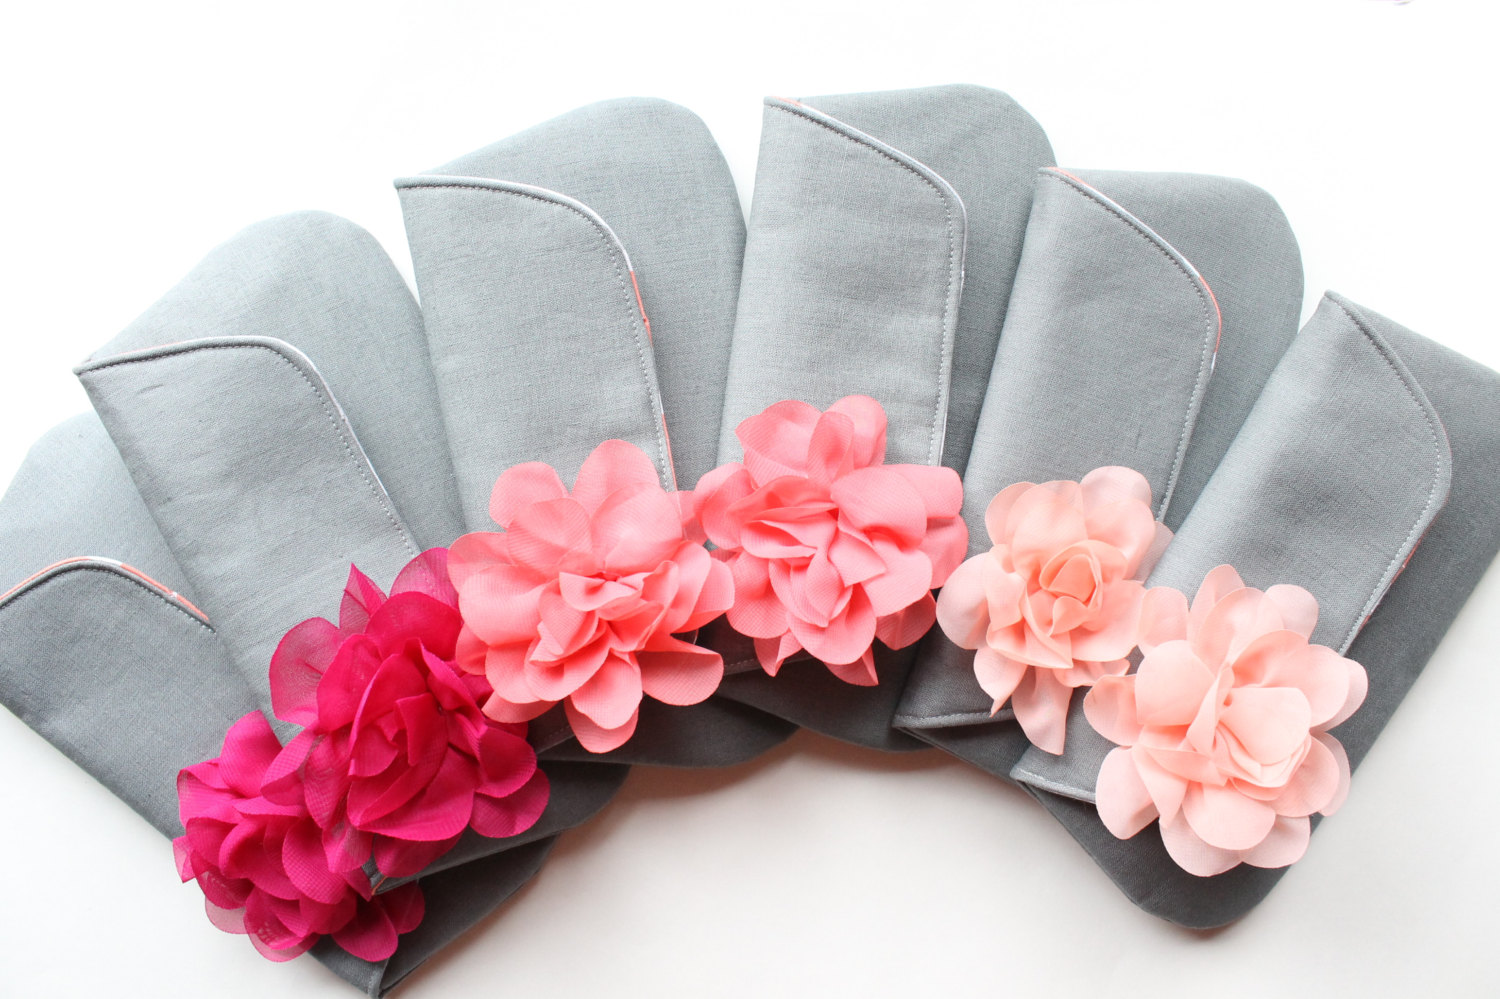 ombre pink and gray clutch purses | 7 Spring Wedding Clutches Your Girls Will Love via emmalinebride.com